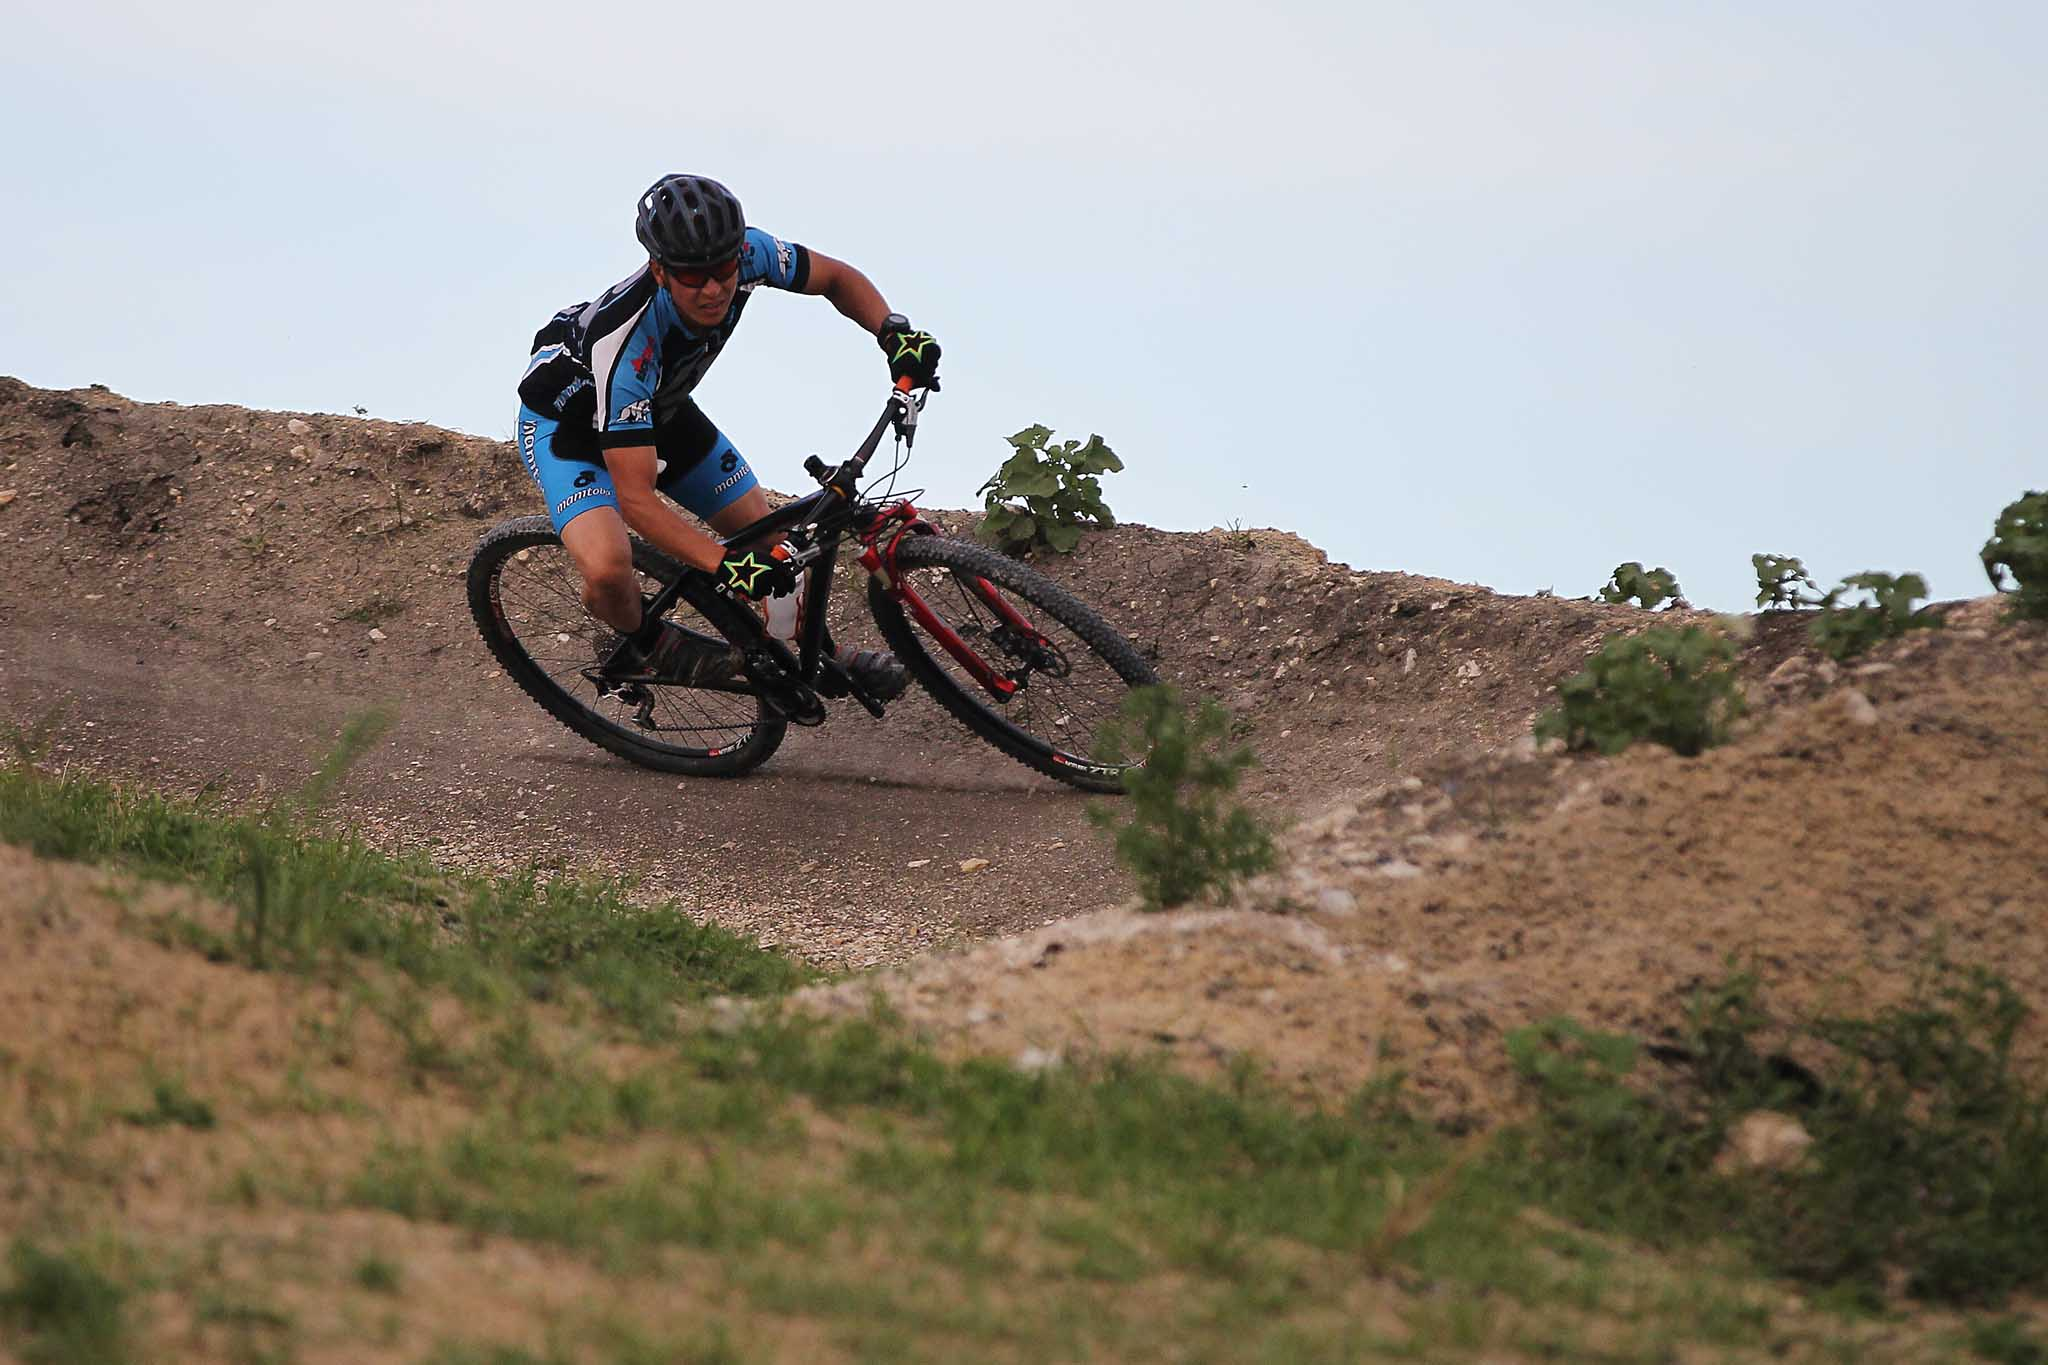 Alex Man makes his way around a berm at Bison Butte in 2016, a course he helped design.